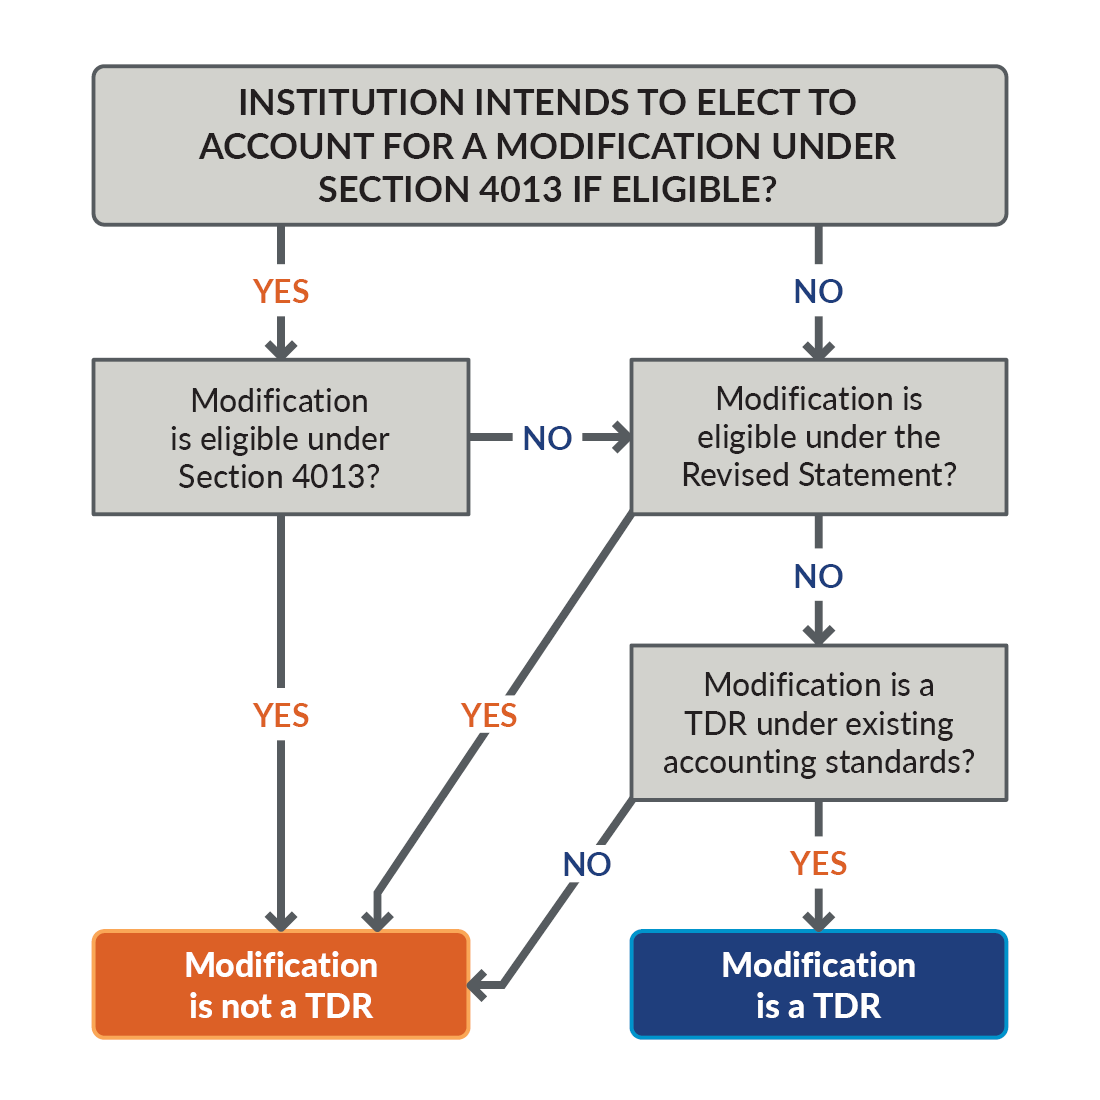 Flow chart depicting COVID-19 loan modifications and accounting considerations.